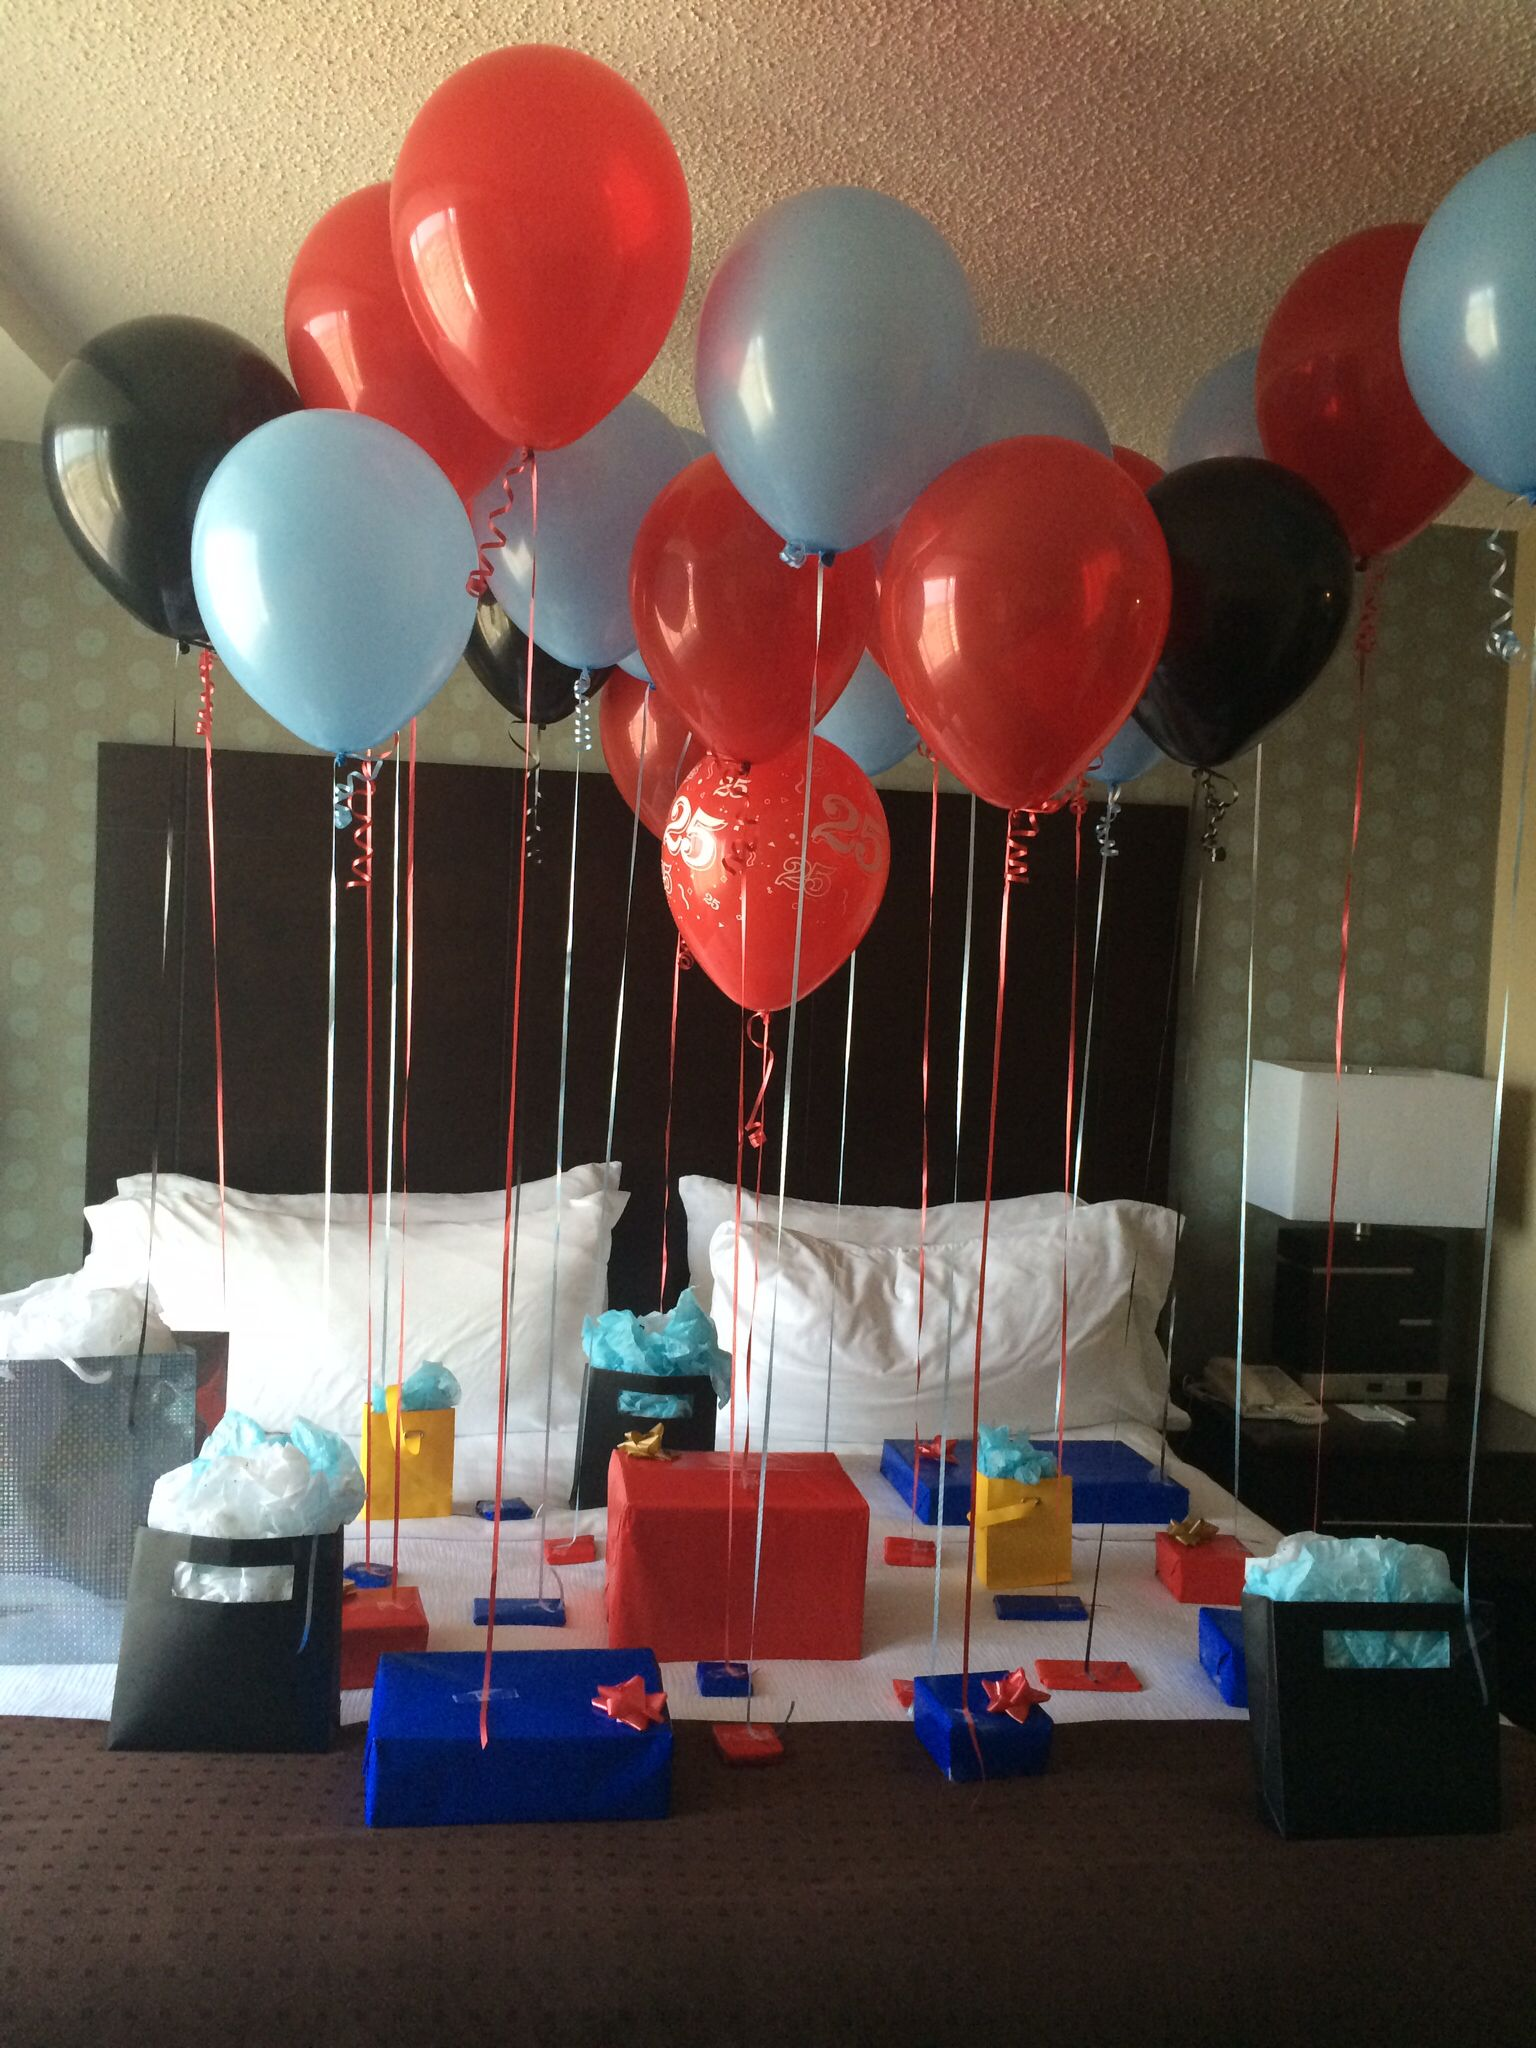 25 gifts for 25th birthday amazing birthday idea he loved for 25th birthday decoration ideas